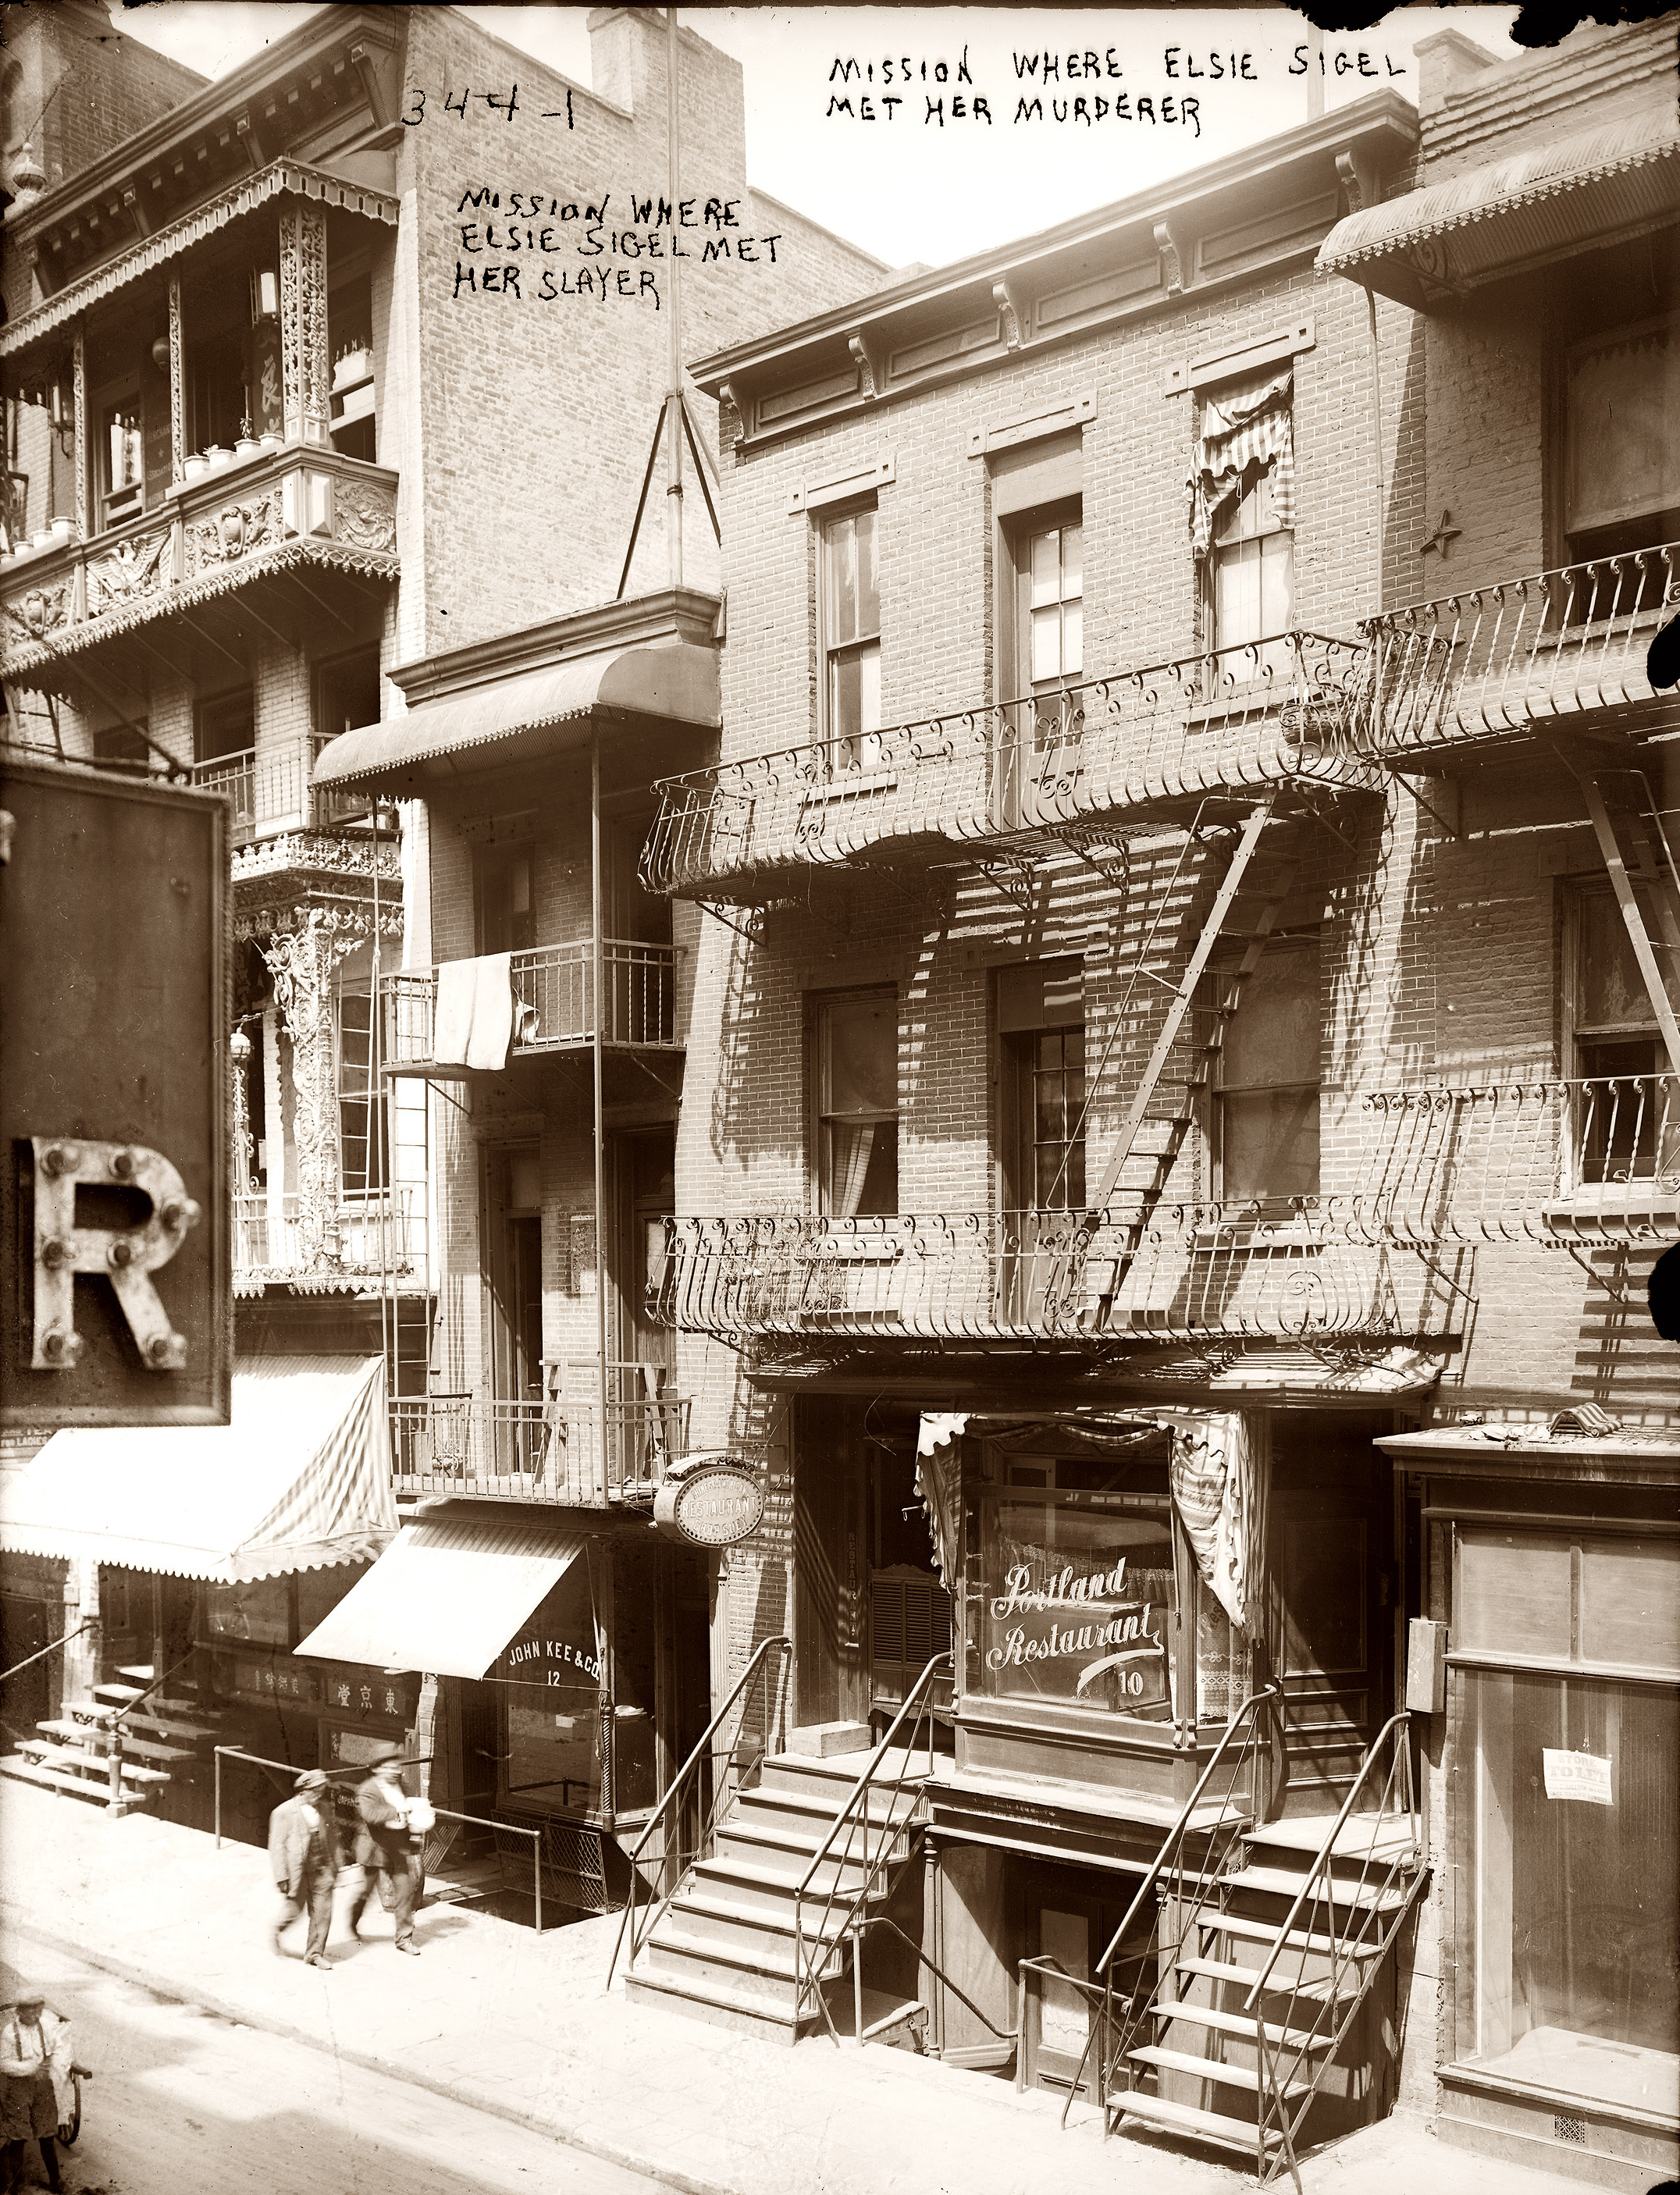 File:782 8th Ave NYC 1915 where Elsie Sigel was murdered.jpg